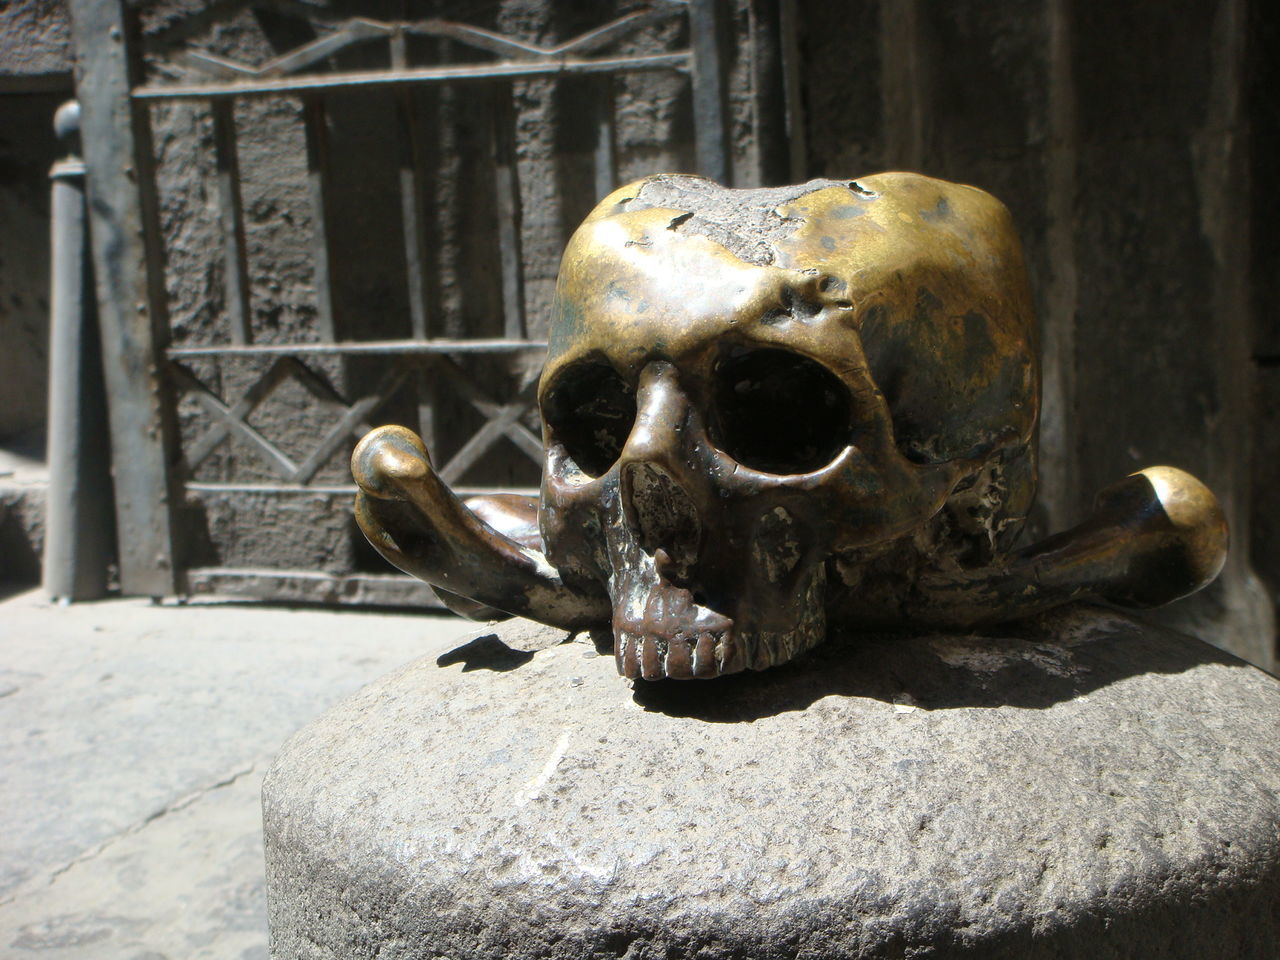 Bronze Statue Day Naples, Italy No People Outdoors Sculpture Skull Sunny Day